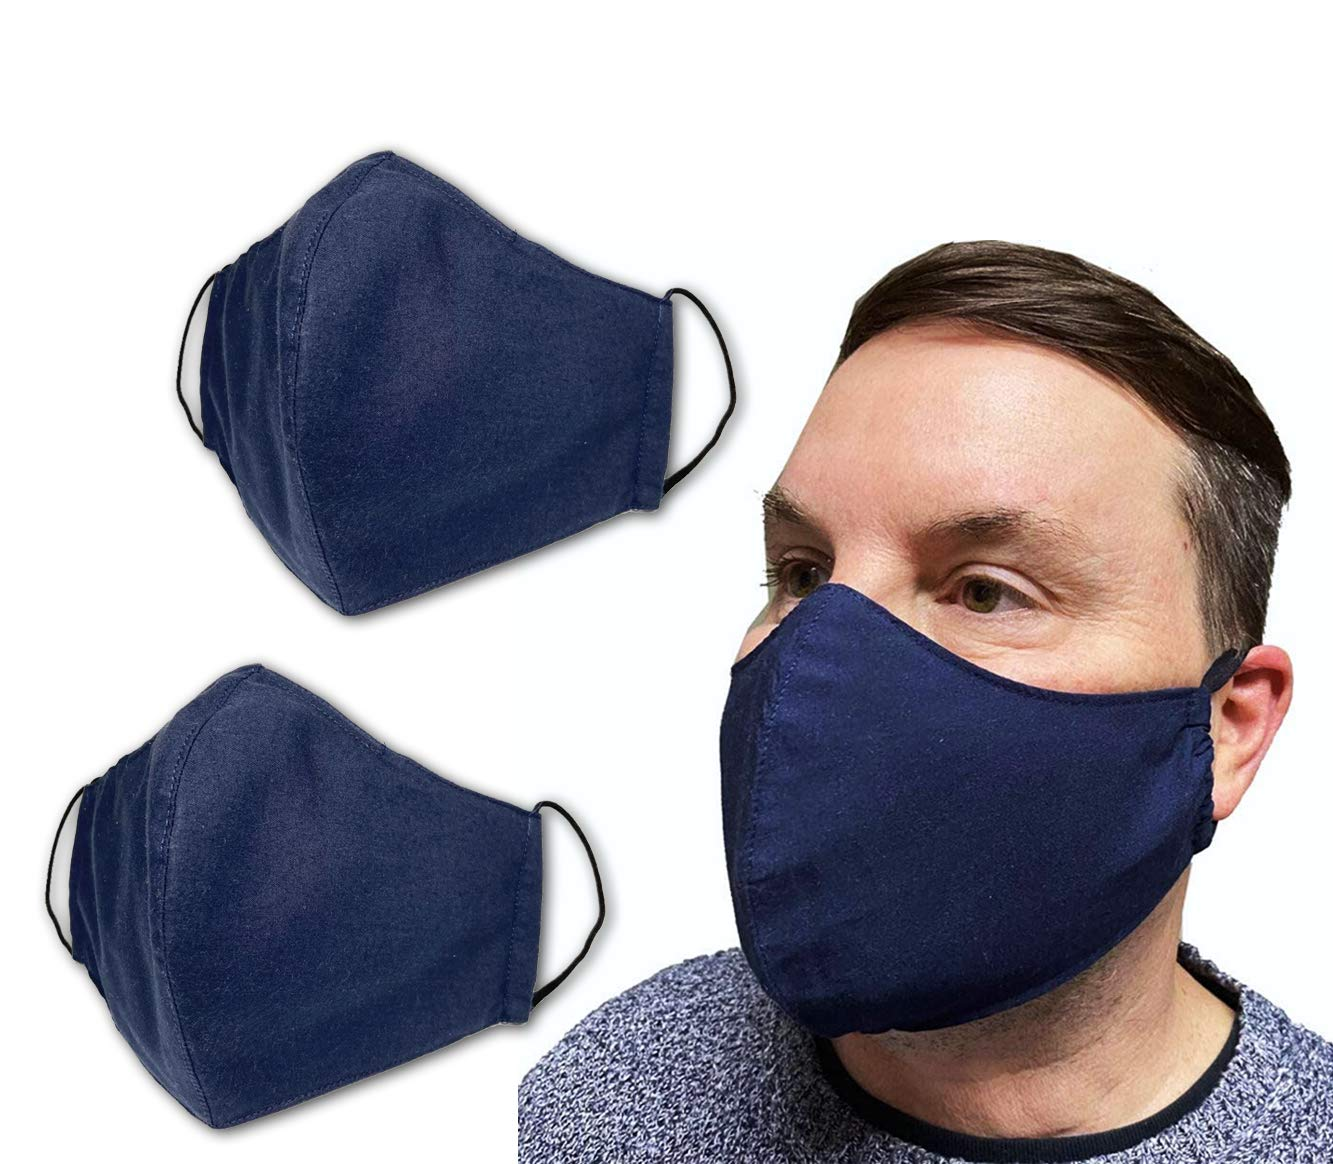 2PCS USA Cloth Face Mask, 100% Cotton Adult Face Mask, Double Layers with Filter Pocket and Nose Wire Bridge for a higher level of protection, Reusable & Machine Washable - Made in USA - Navy